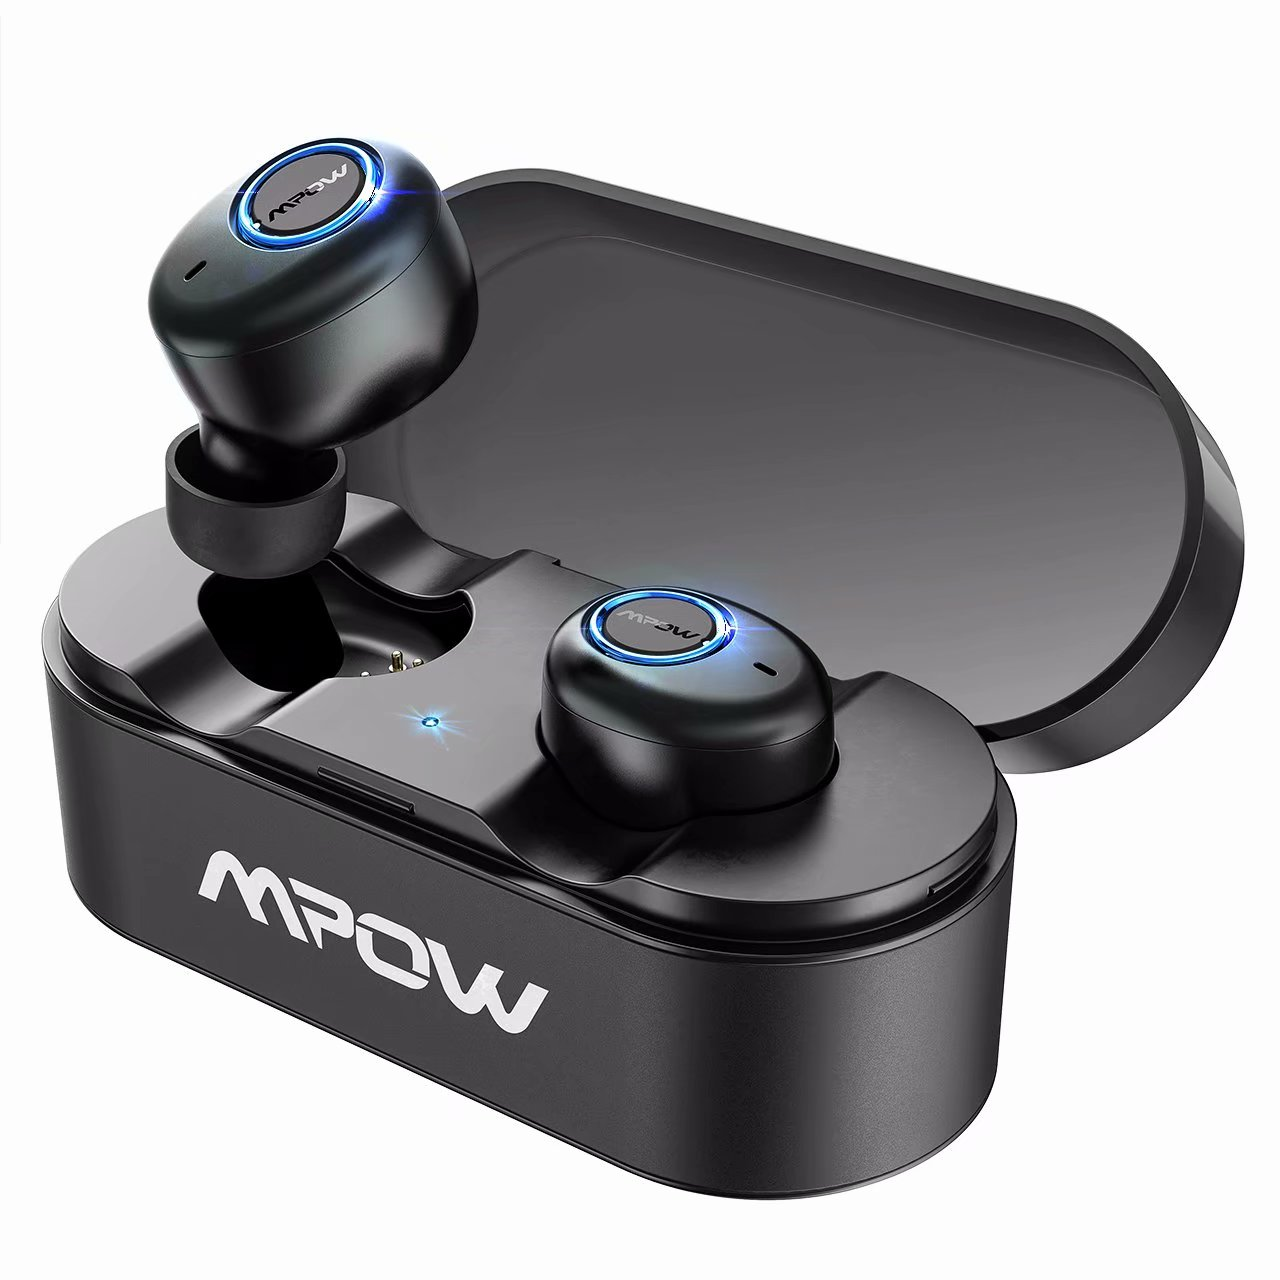 Mpow T1 True Wireless Bluetooth Earbuds, Bluetooth 5.0 Bluetooth Earbuds, One-step Pairing Earbuds with Charging Case and Built-in Mic for iPhone Android